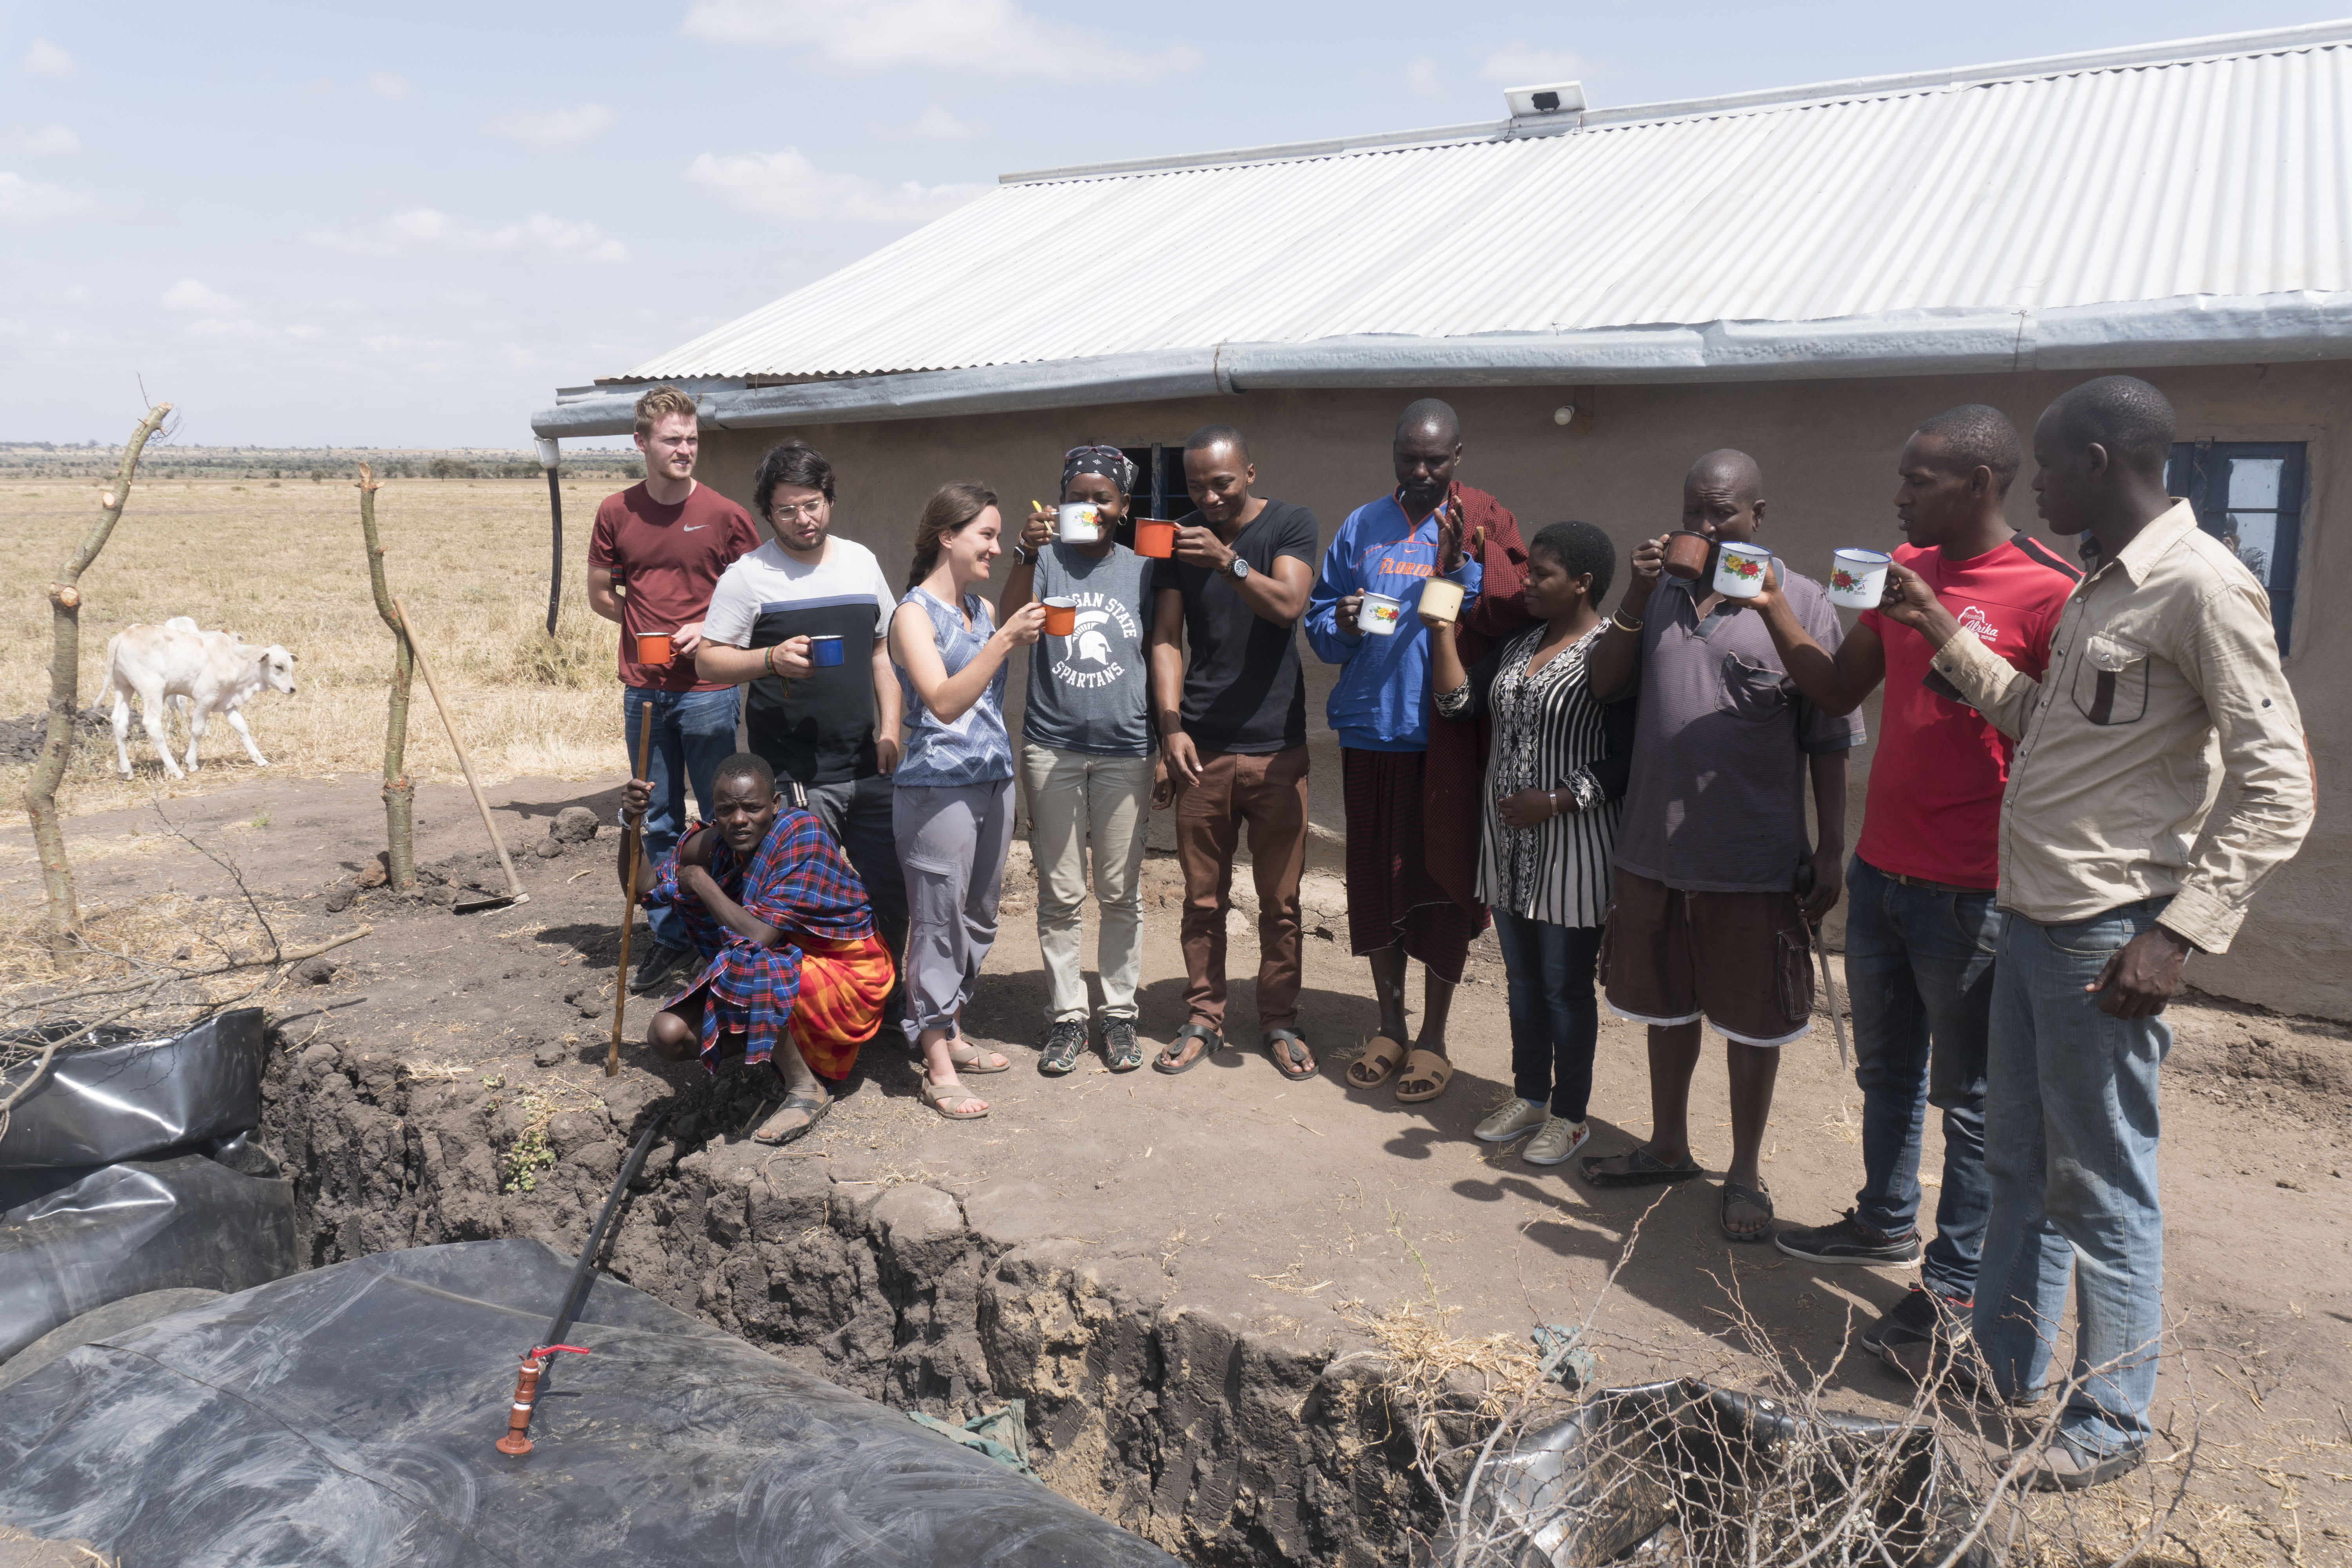 Eleven individuals are outside standing in front of the biogas system digester used to create methane gas and power the house's stove. They are standing with mugs of hot tea they made from their biogas stove.